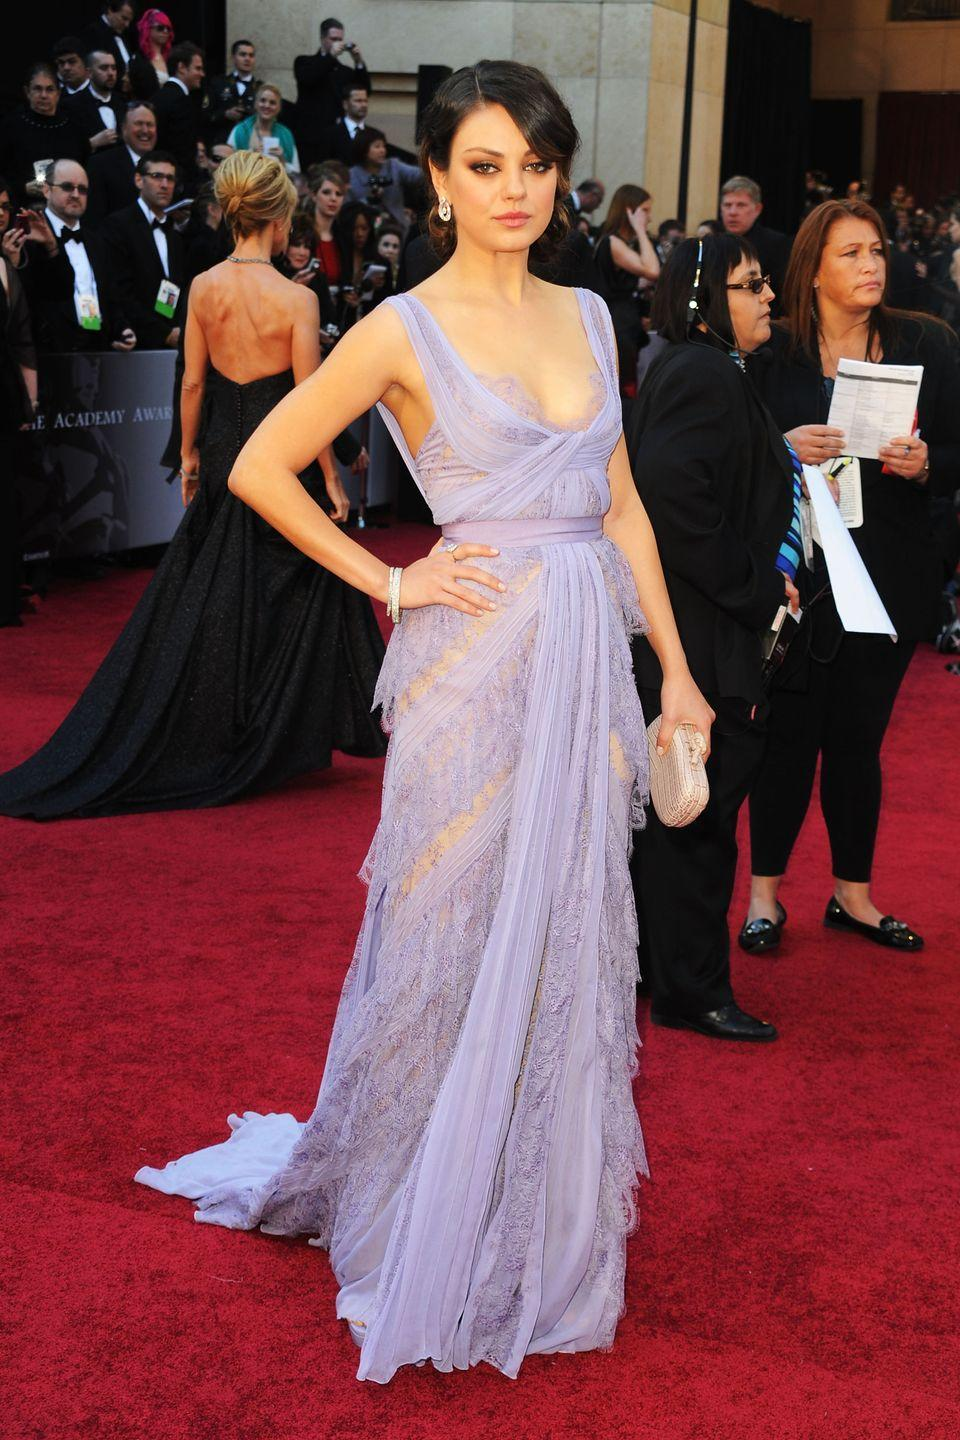 <p>Mila Kunis' lilac moment on the red carpet particularly stands out, because it was a refreshing contrast to her typically low-key, androgynous style. The actress looked angelic in this semi-sheer Elie Saab gown with feminine lace detailing - the distinctive soft purple hue making it memorable for all the right reasons.</p>